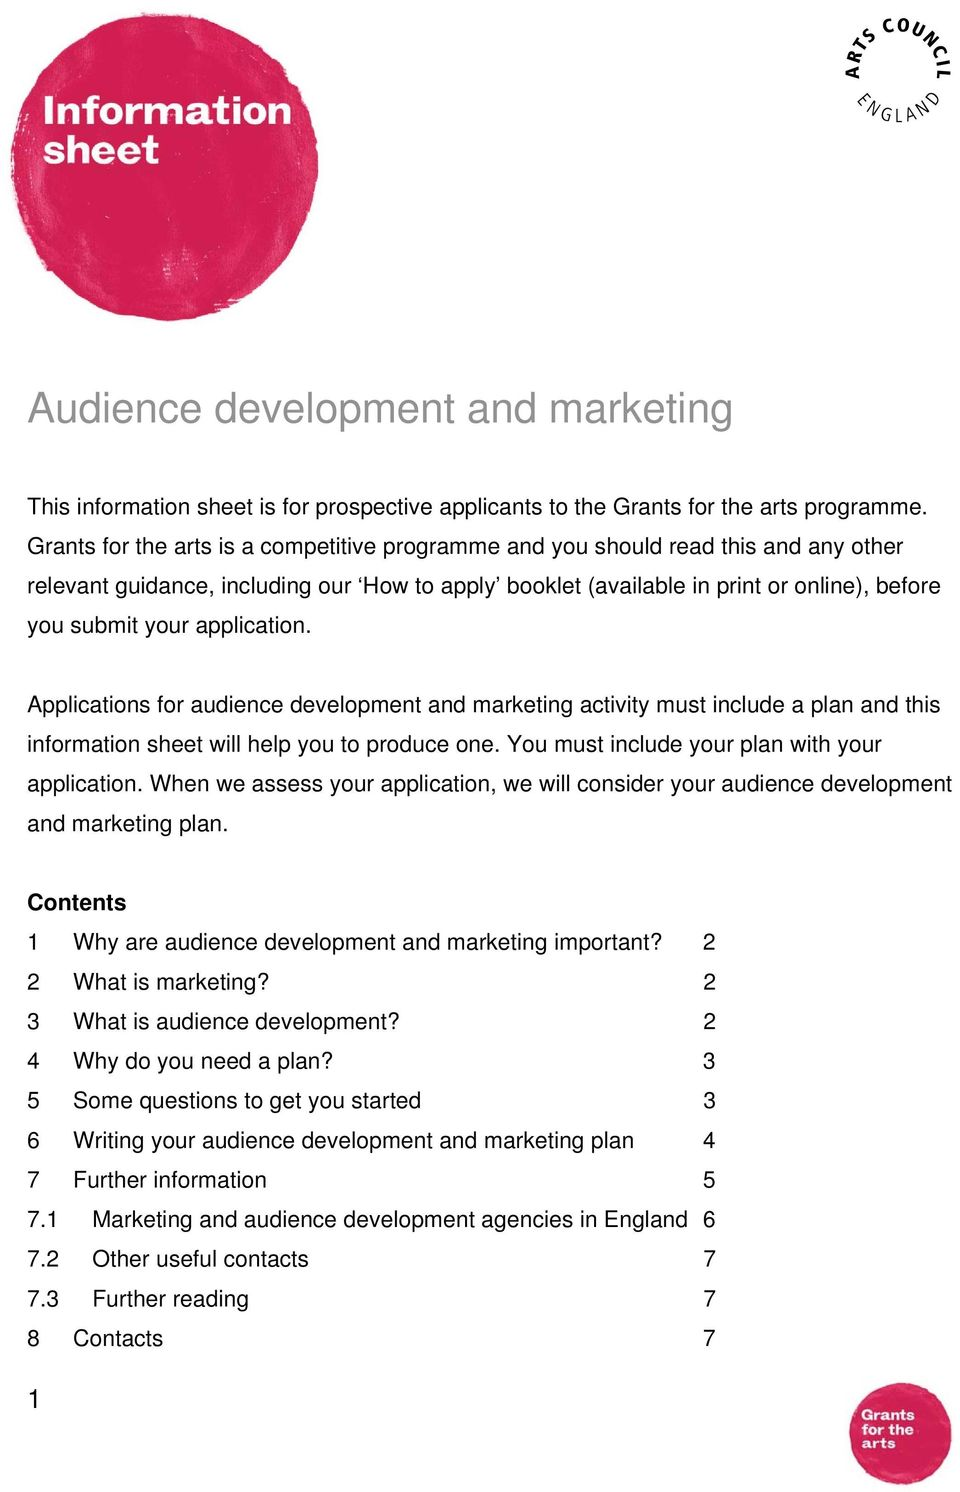 application. Applications for audience development and marketing activity must include a plan and this information sheet will help you to produce one. You must include your plan with your application.